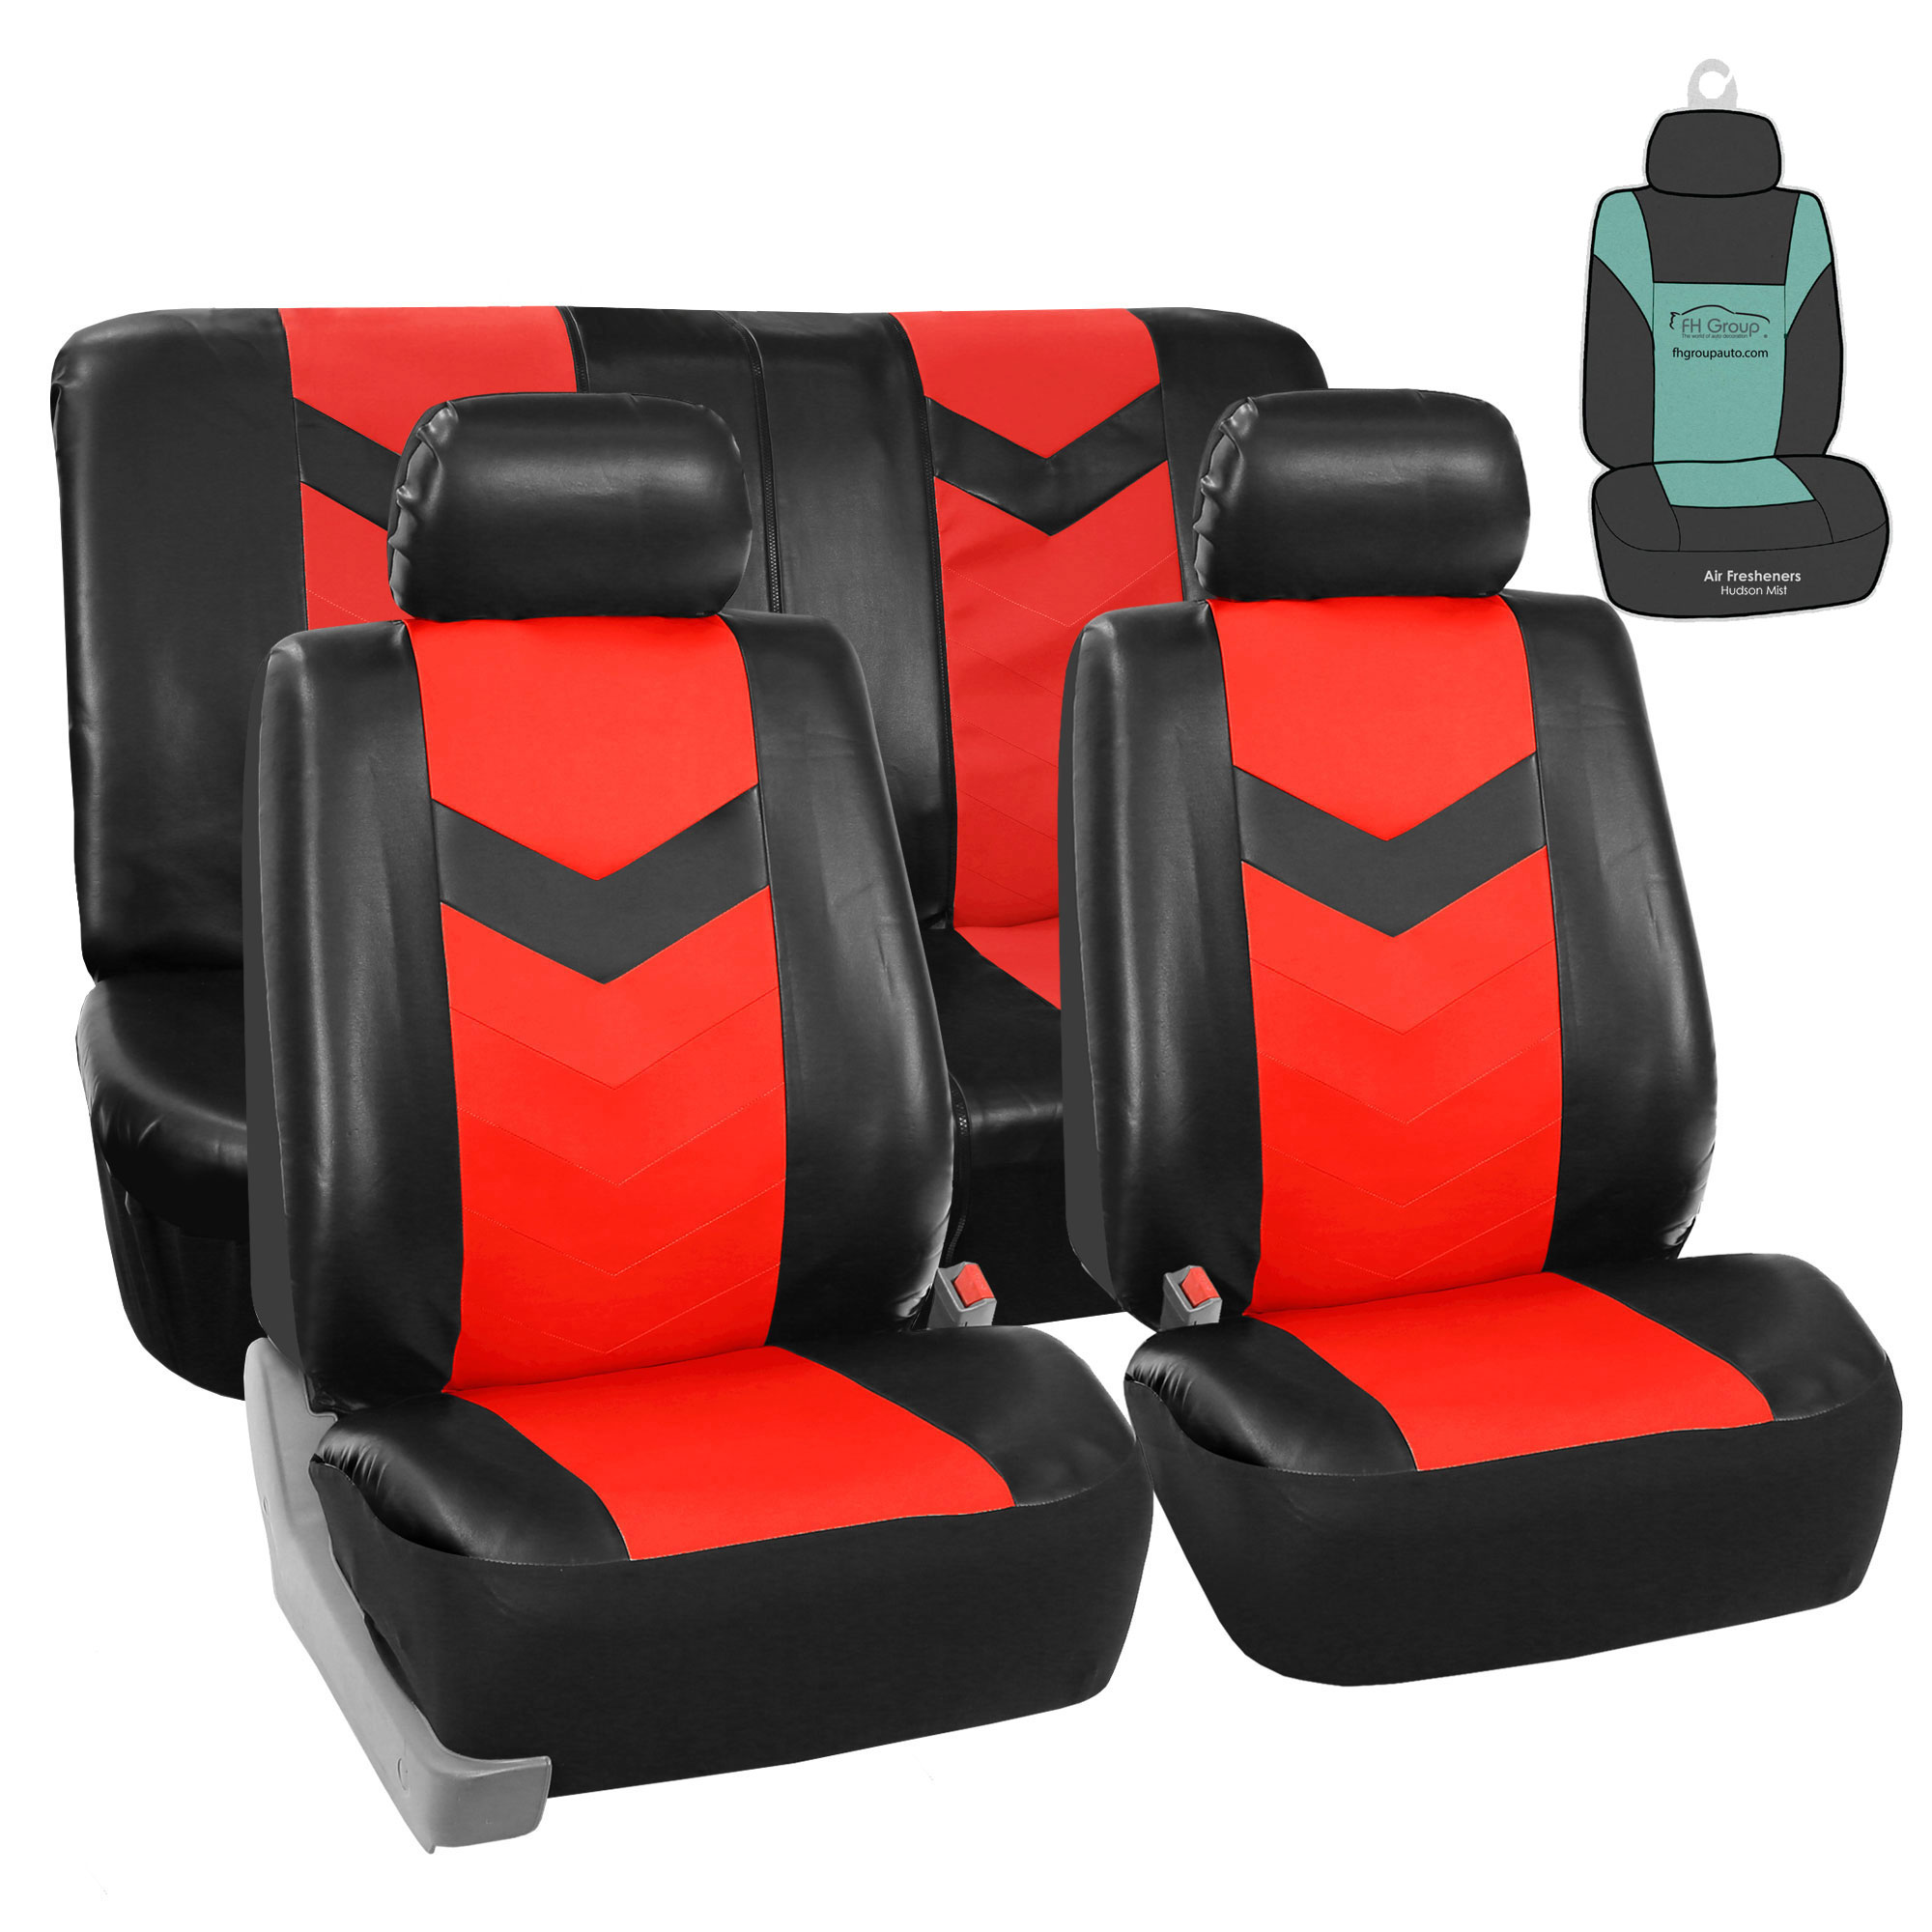 FH Gorup PU Leather Seat Covers For Auto Car SUV Red Black w/ Accessories / Free Gift